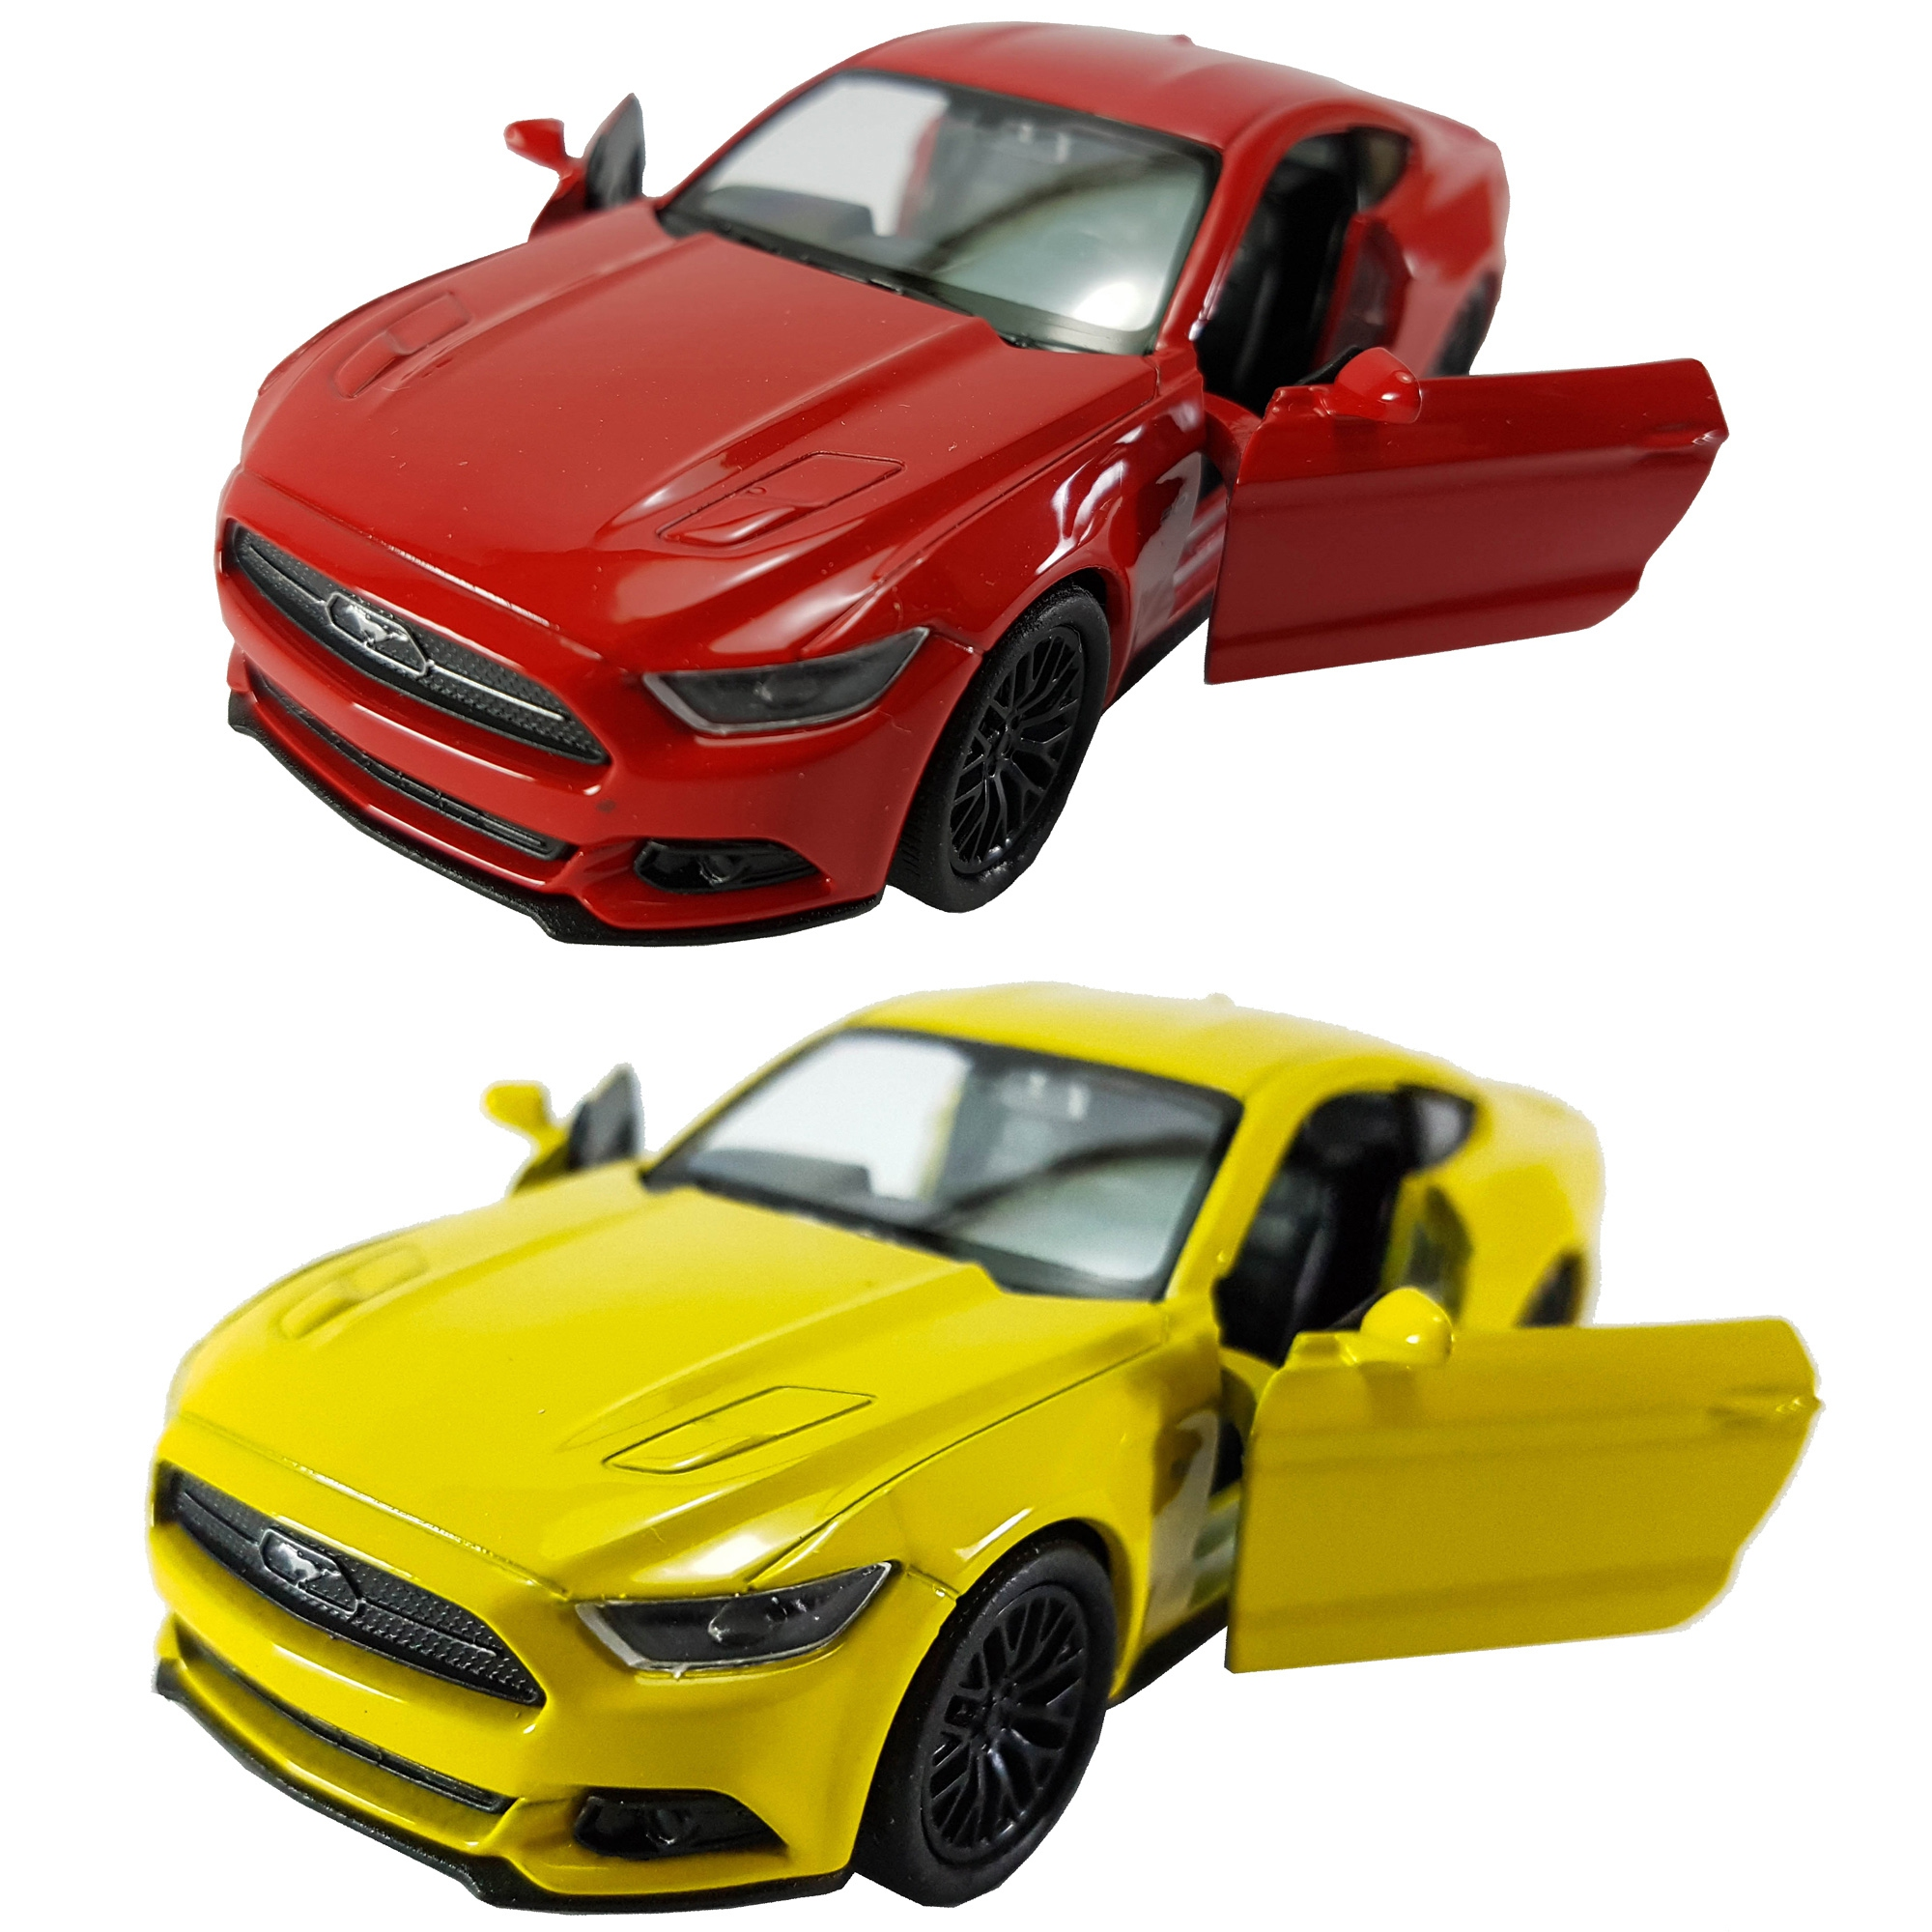 Welly 134-139 Die-cast 2015 Ford Mustang GT Car  sc 1 st  Lelong.my & Welly 1:34-1:39 Die-cast 2015 Ford (end 2/11/2020 11:26 AM) markmcfarlin.com